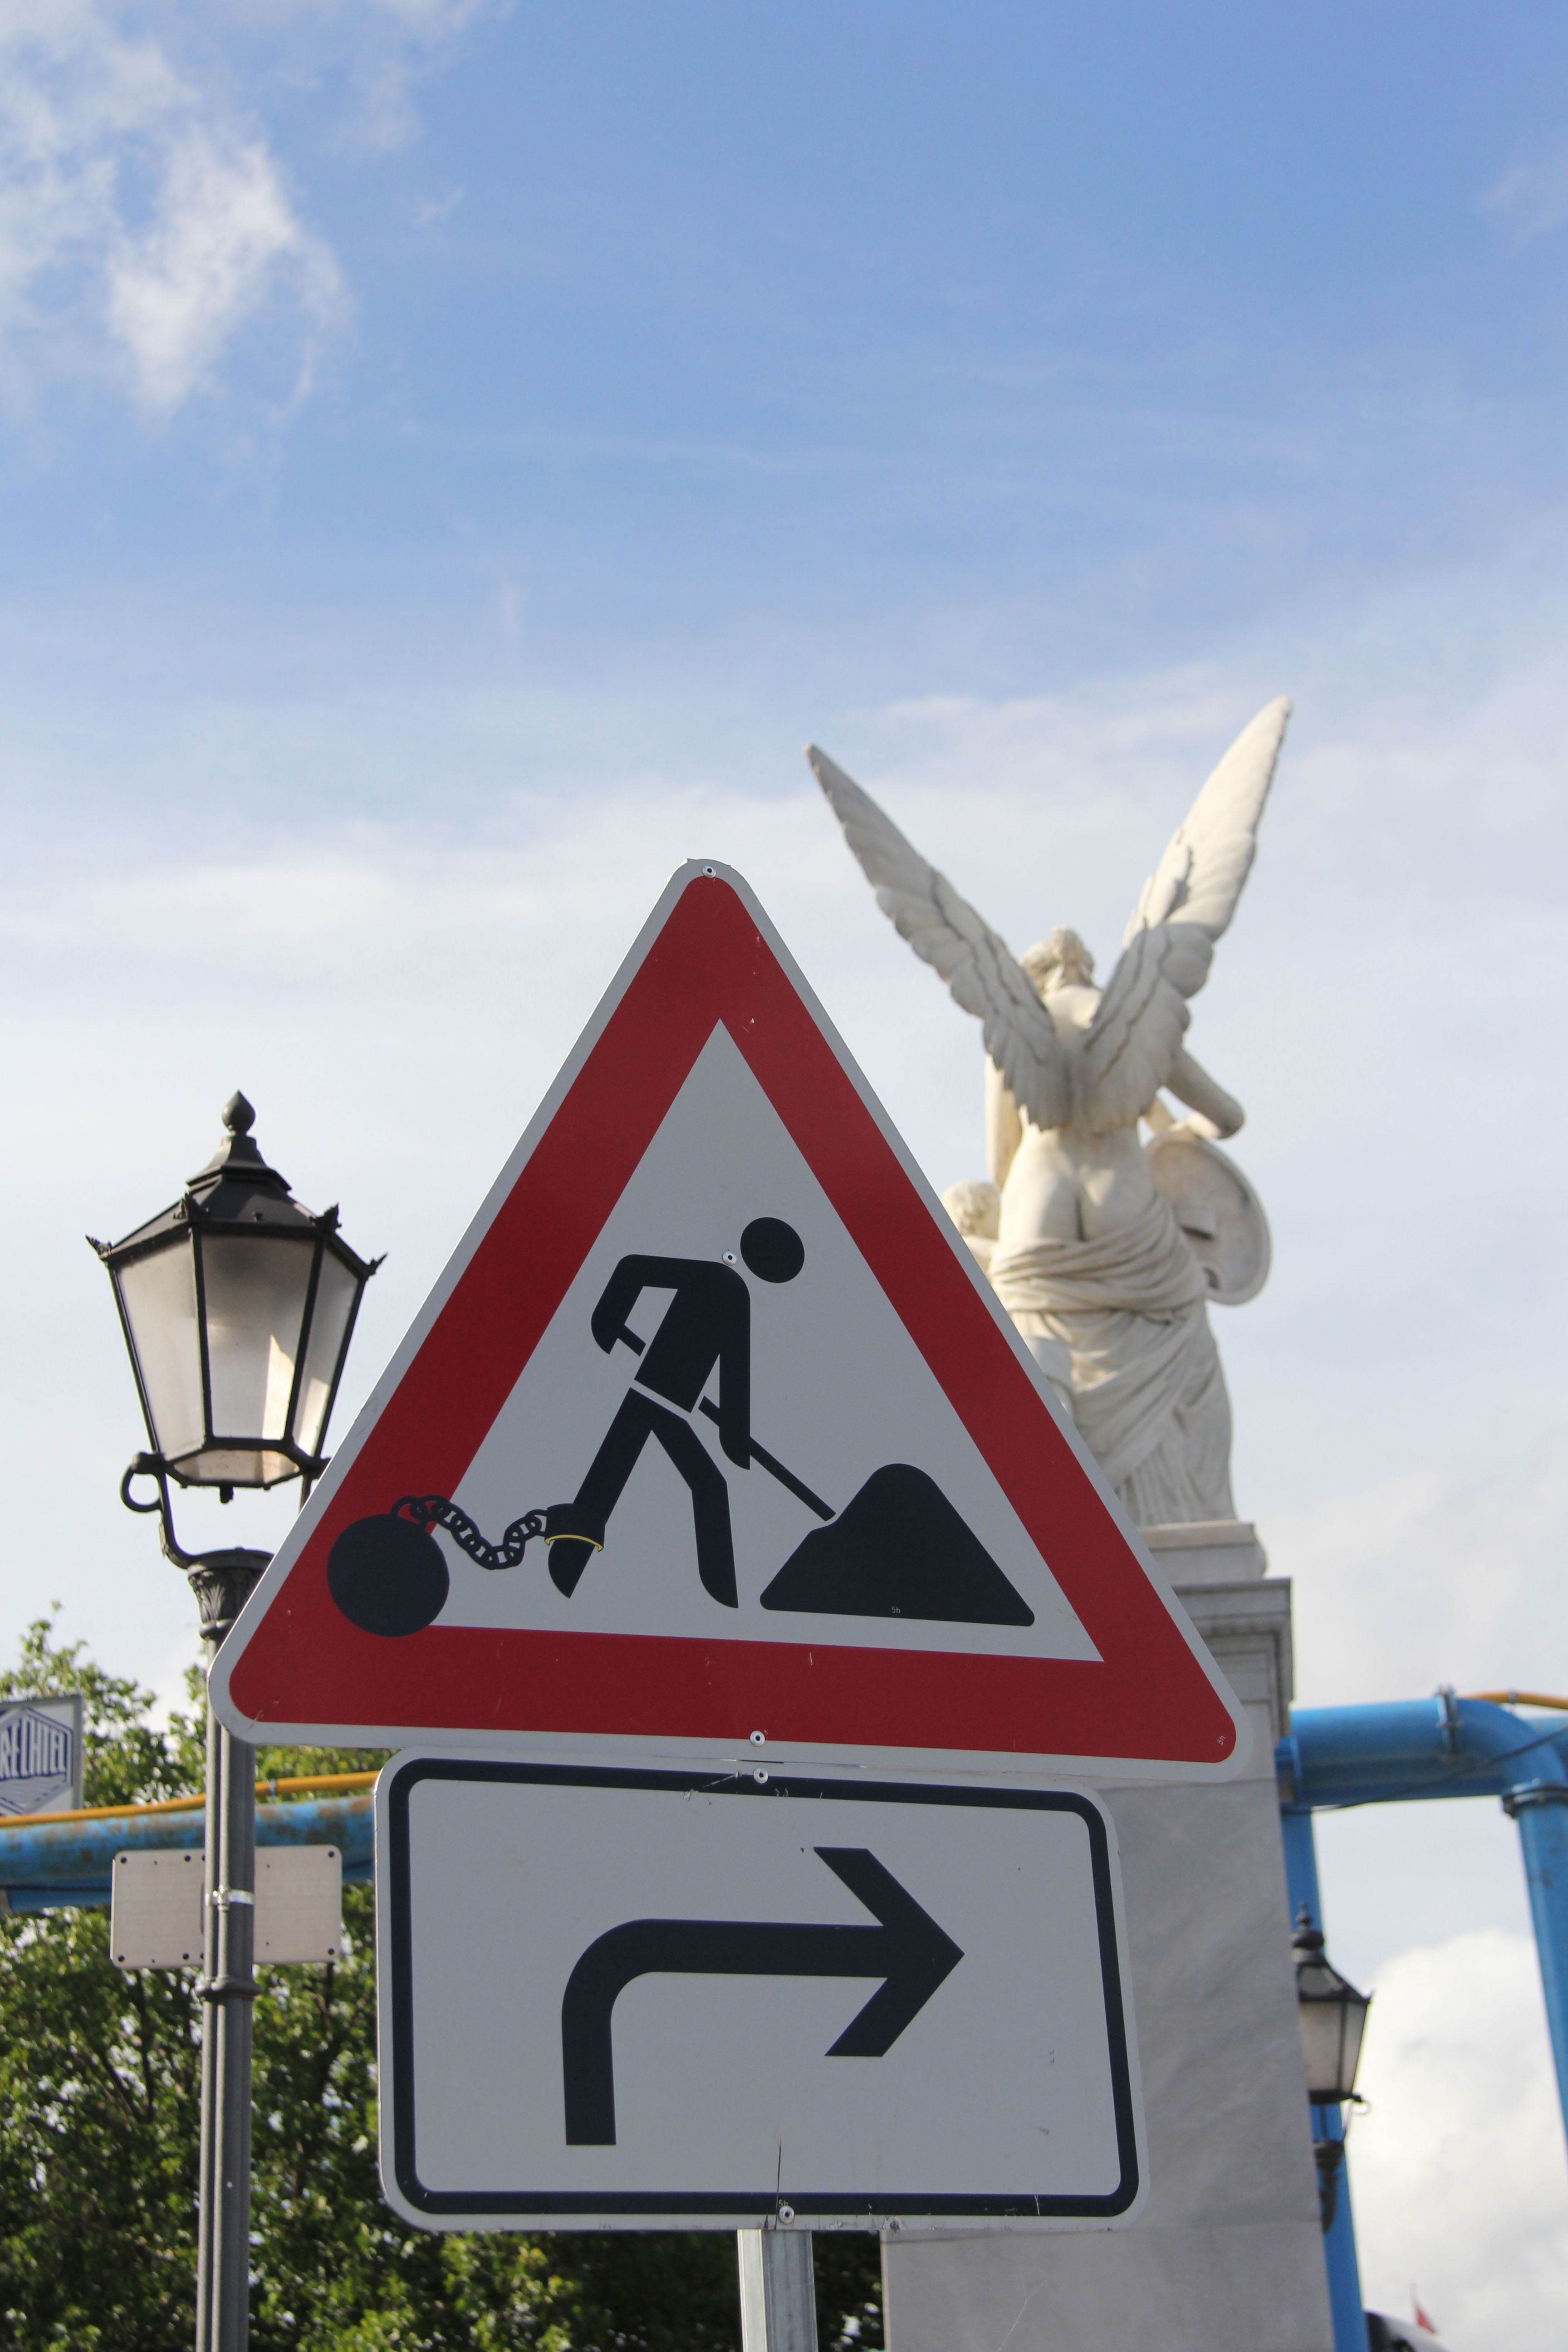 The Old Ball And Chain - Street Art by CLET (Clet Abraham) on a Roadworks street sign in Berlin